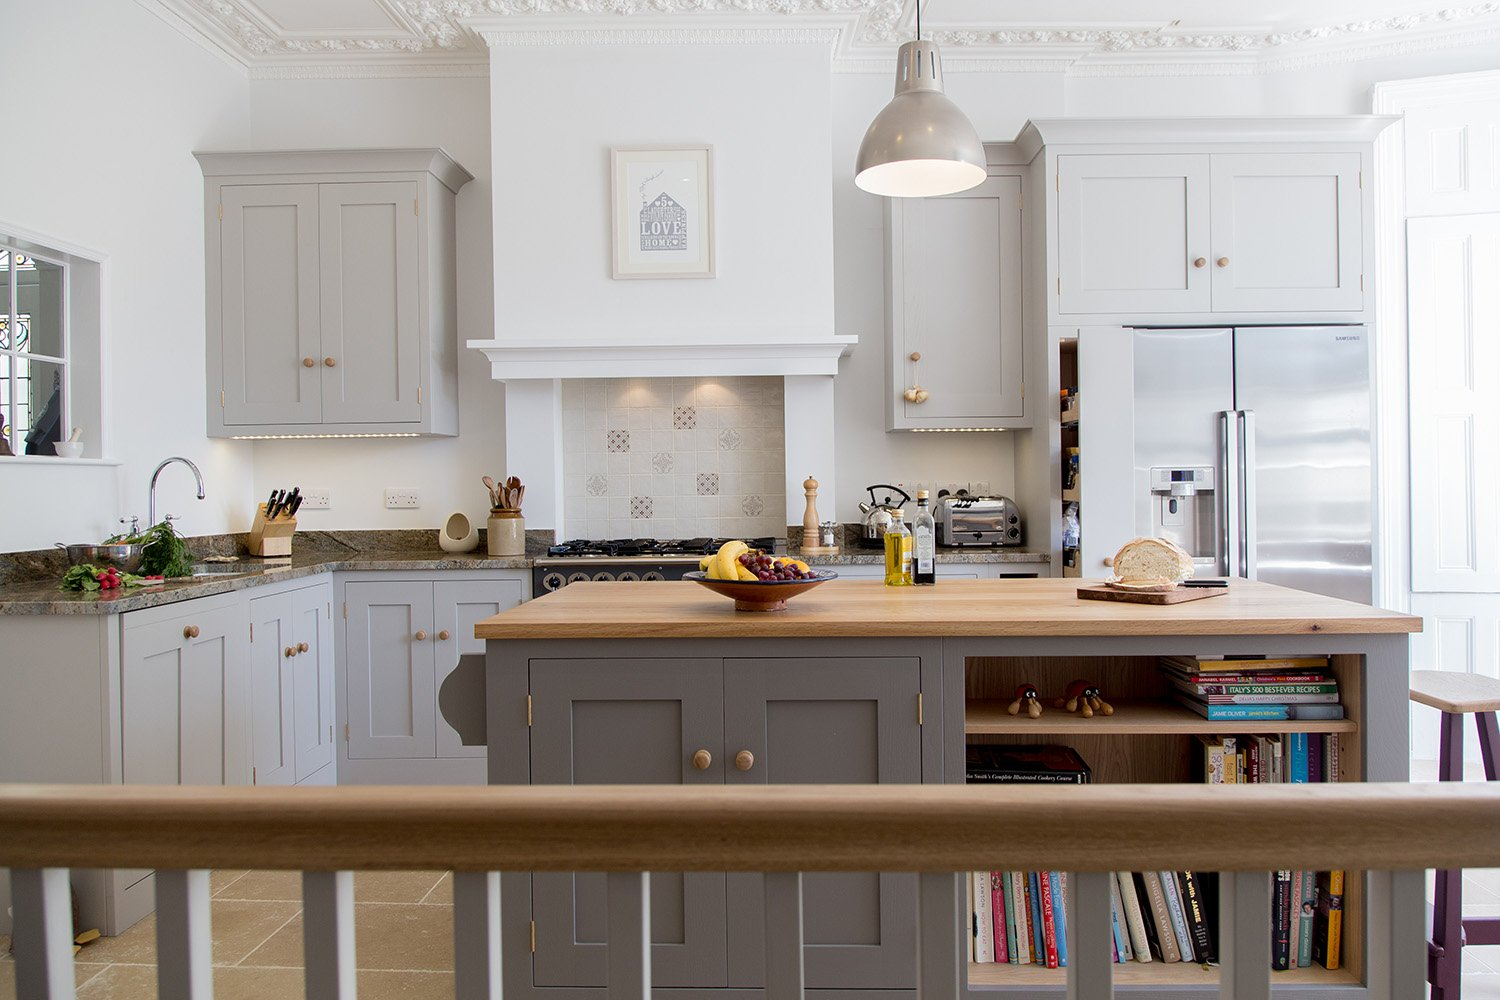 2014 McCullagh- The Clifton Kitchen (4)